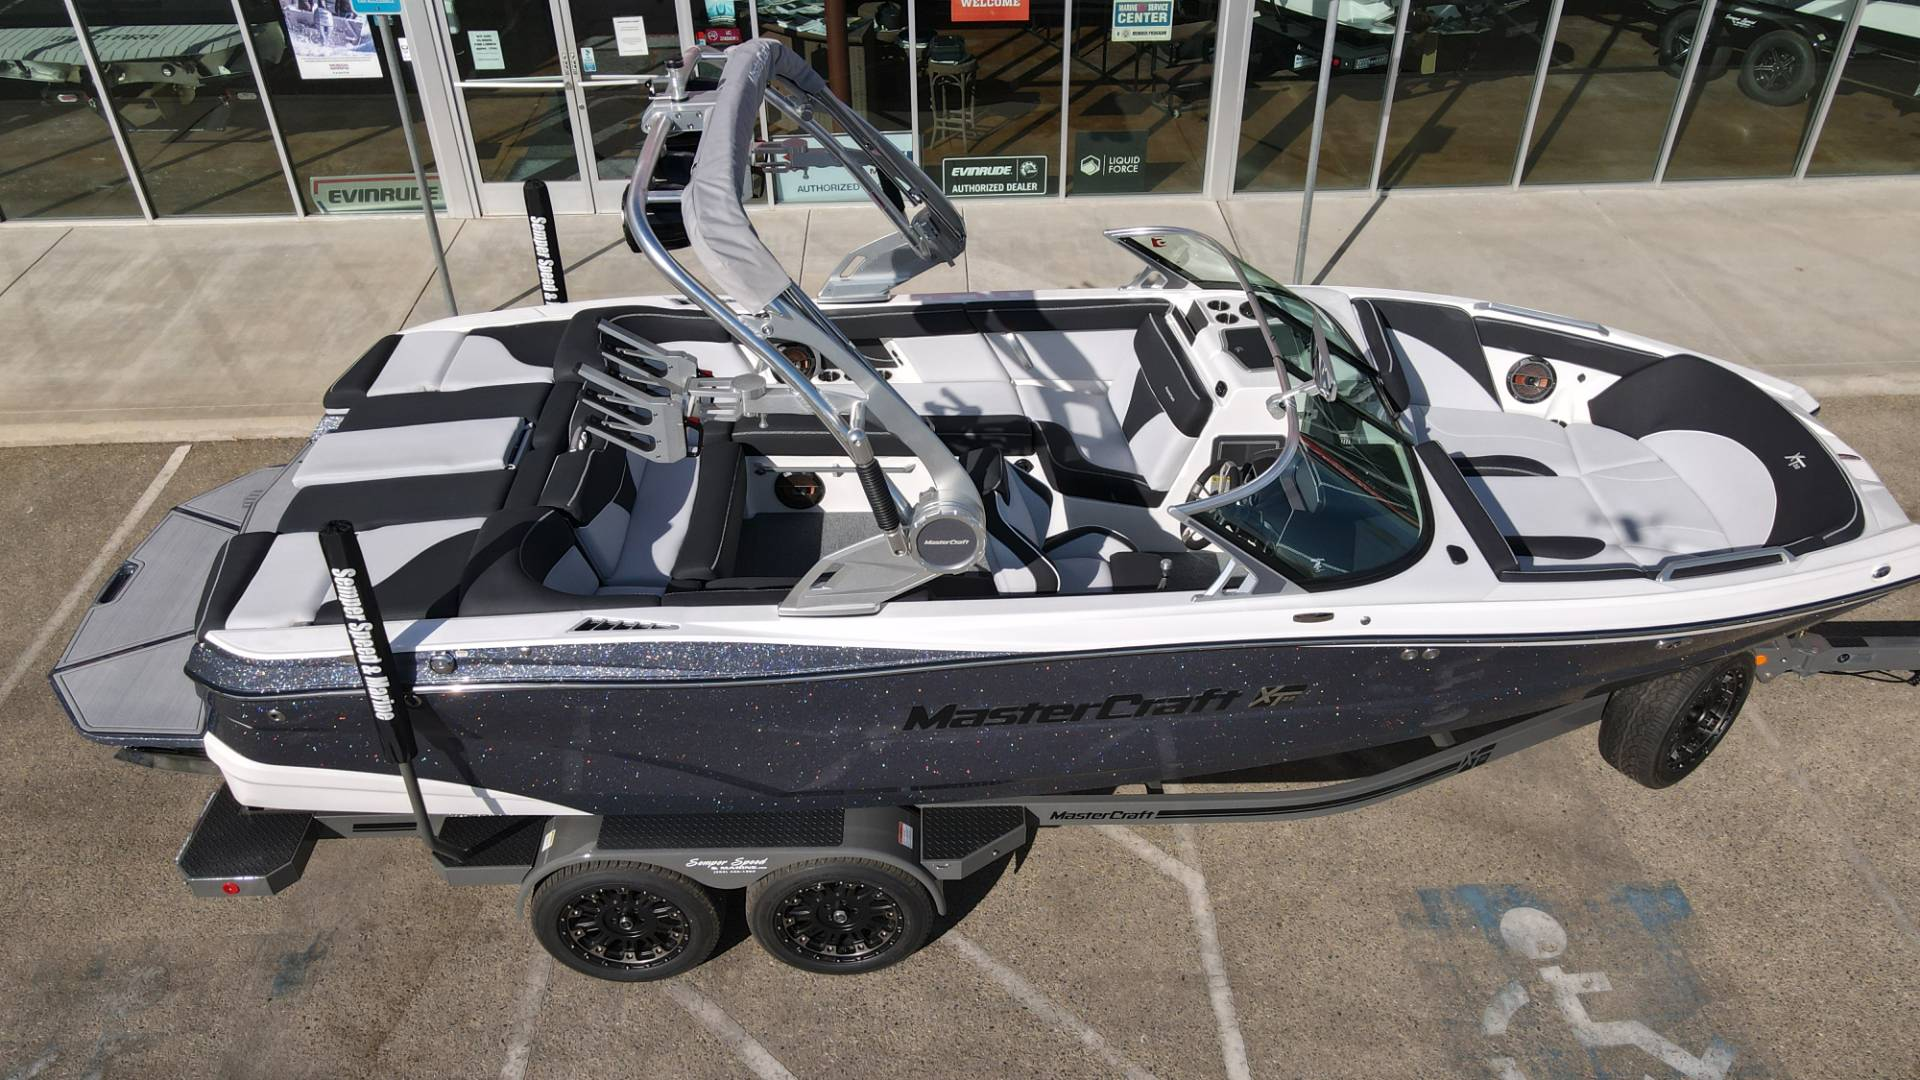 2021 Mastercraft XT22 in Madera, California - Photo 2